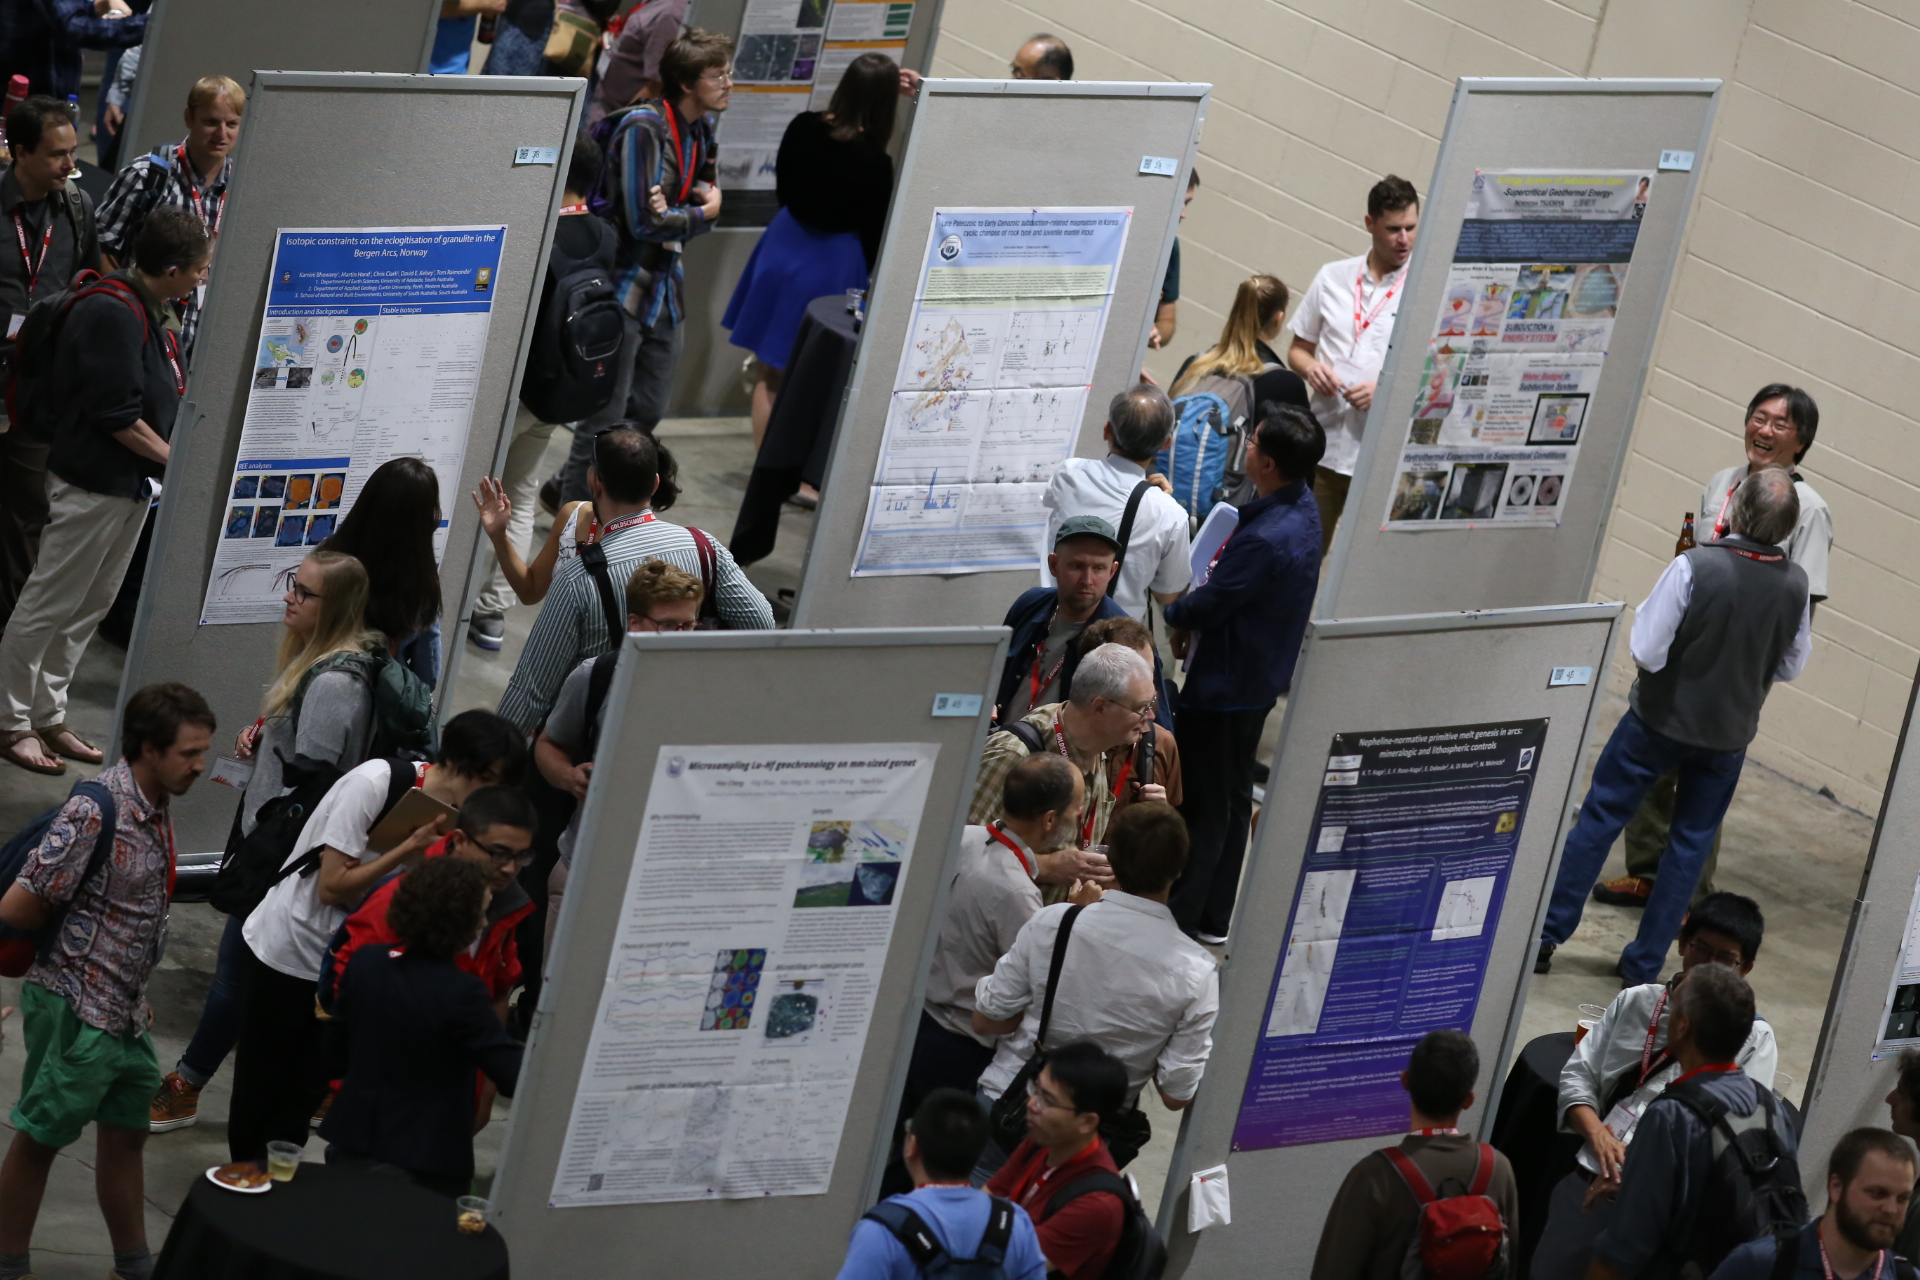 Poster Session at Goldschmidt 2018